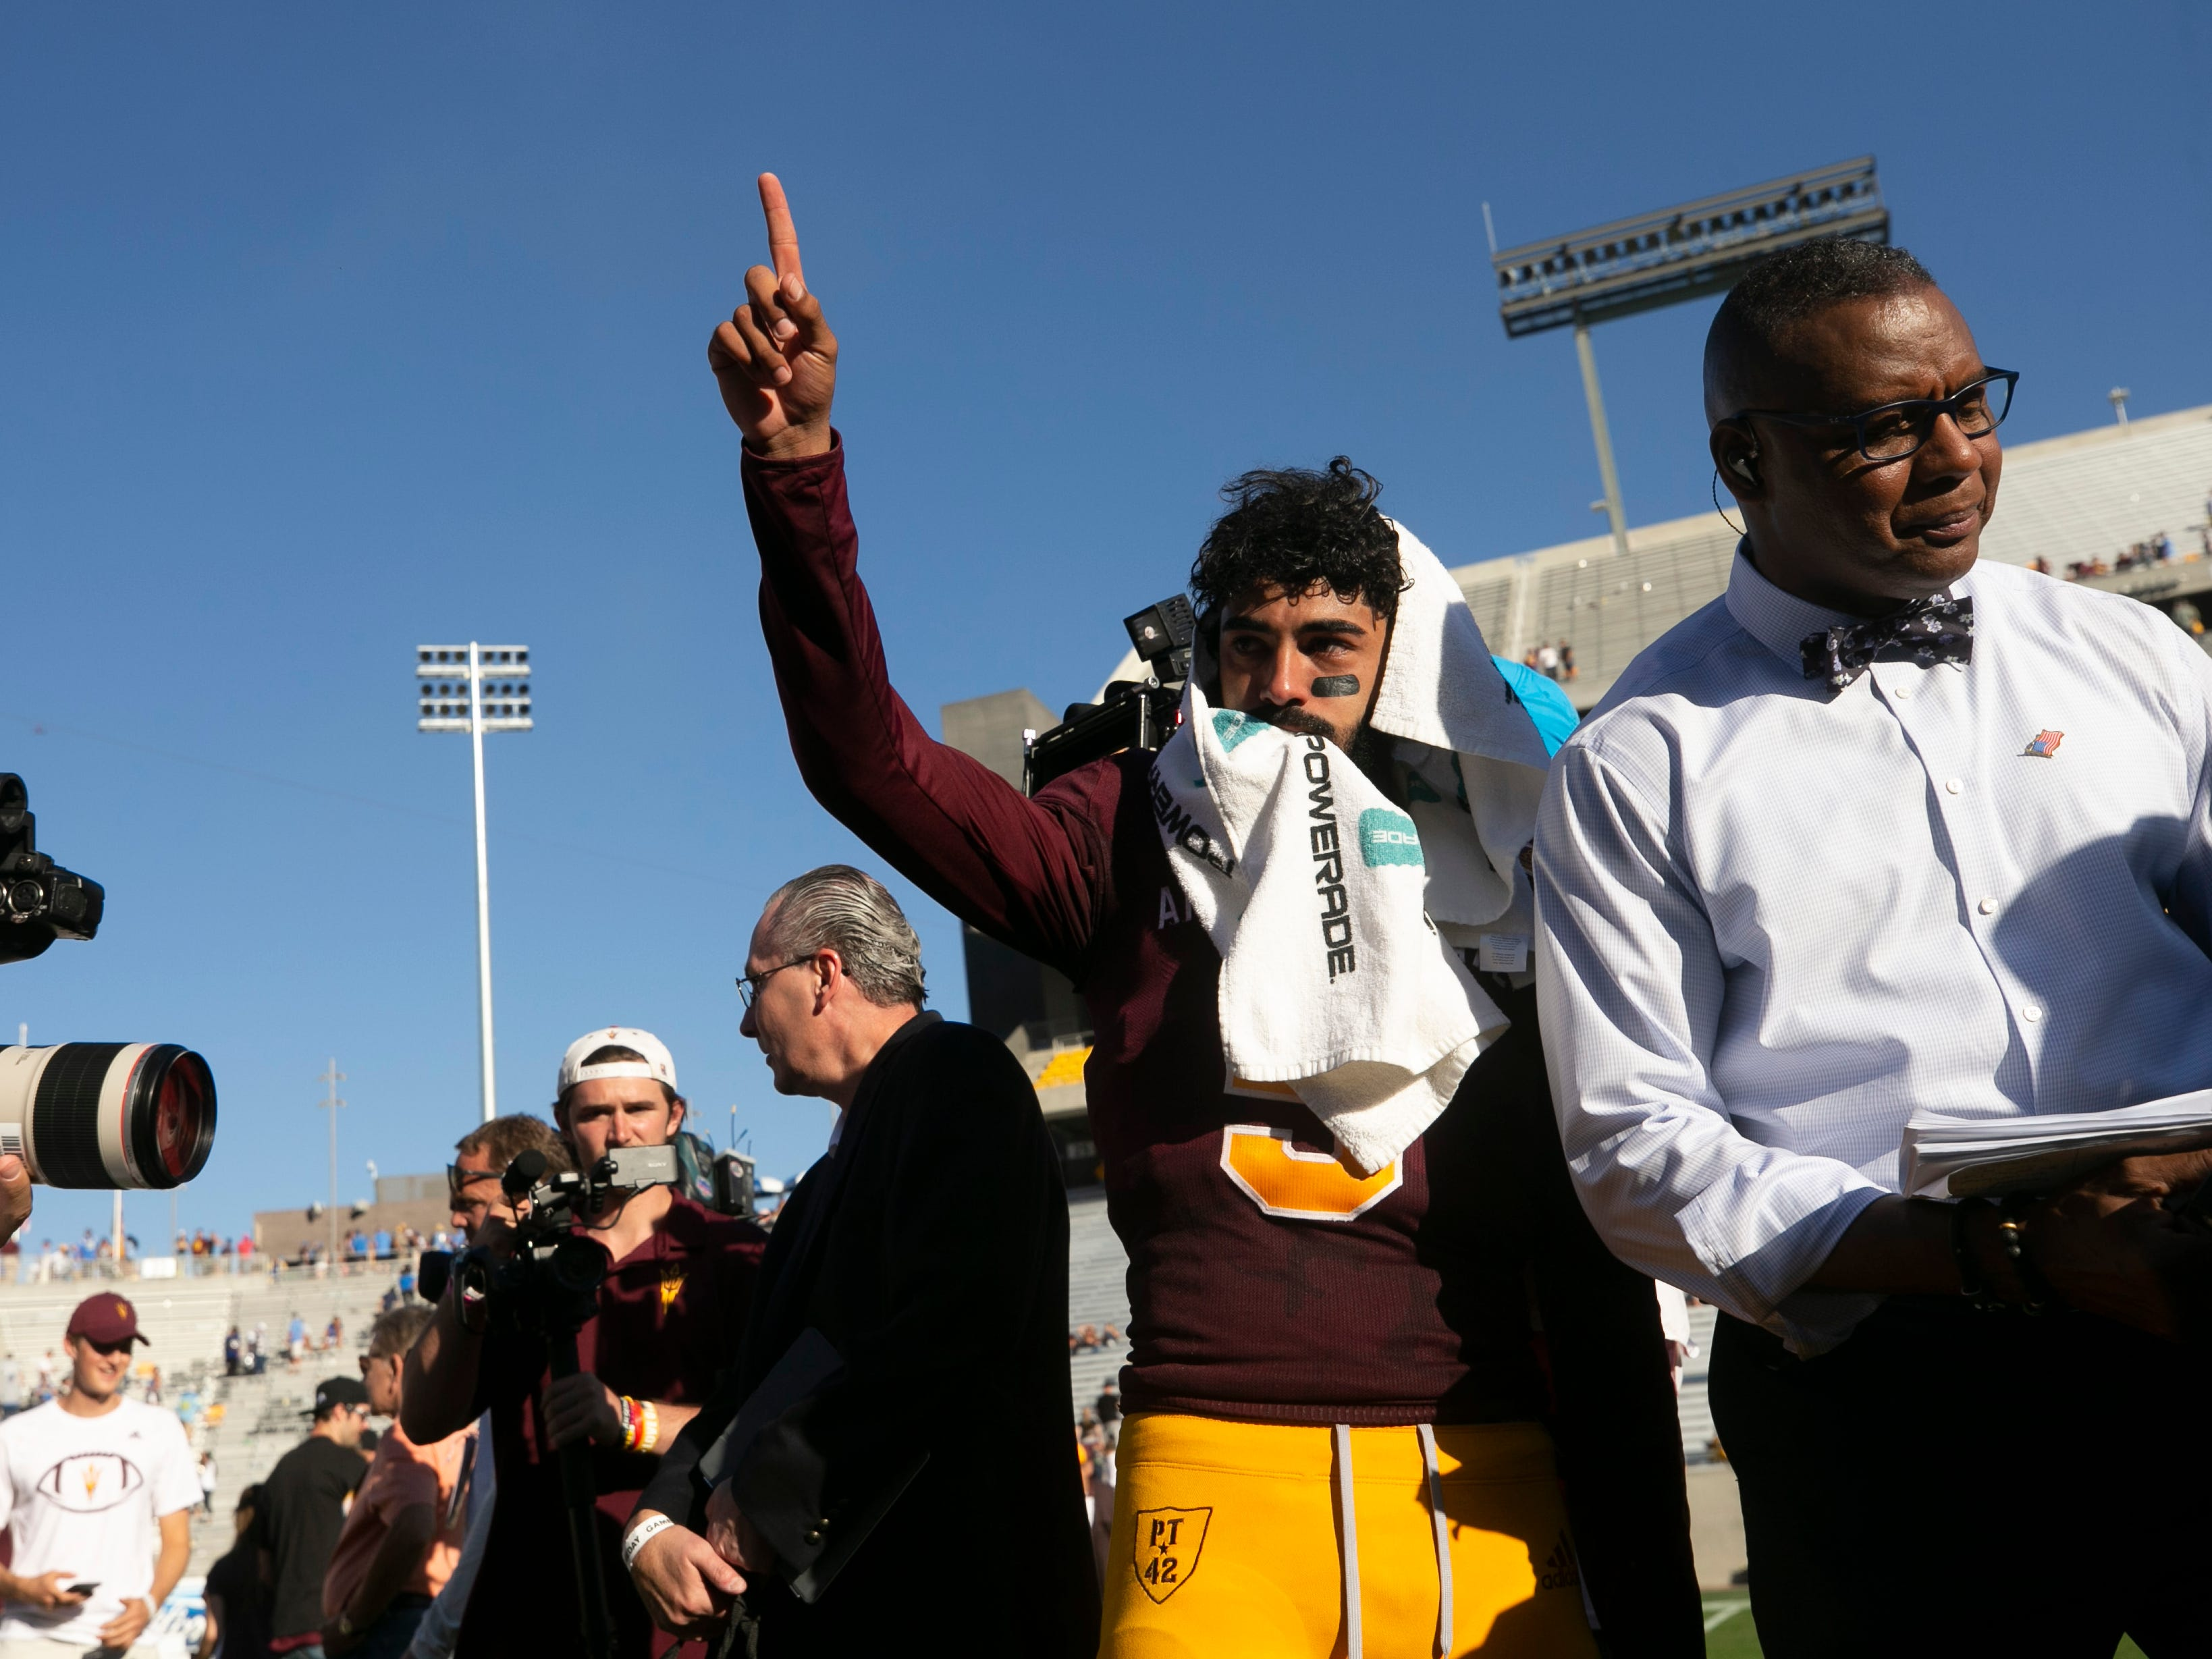 ASU quarterback Manny Wilkins points to the crowd after ASU's 31-28 win over UCLA in the PAC-12 college football game at Sun Devil Stadium in Tempe on Saturday, November 10, 2018. This is the last game at Sun Devil Stadium for Wilkins.